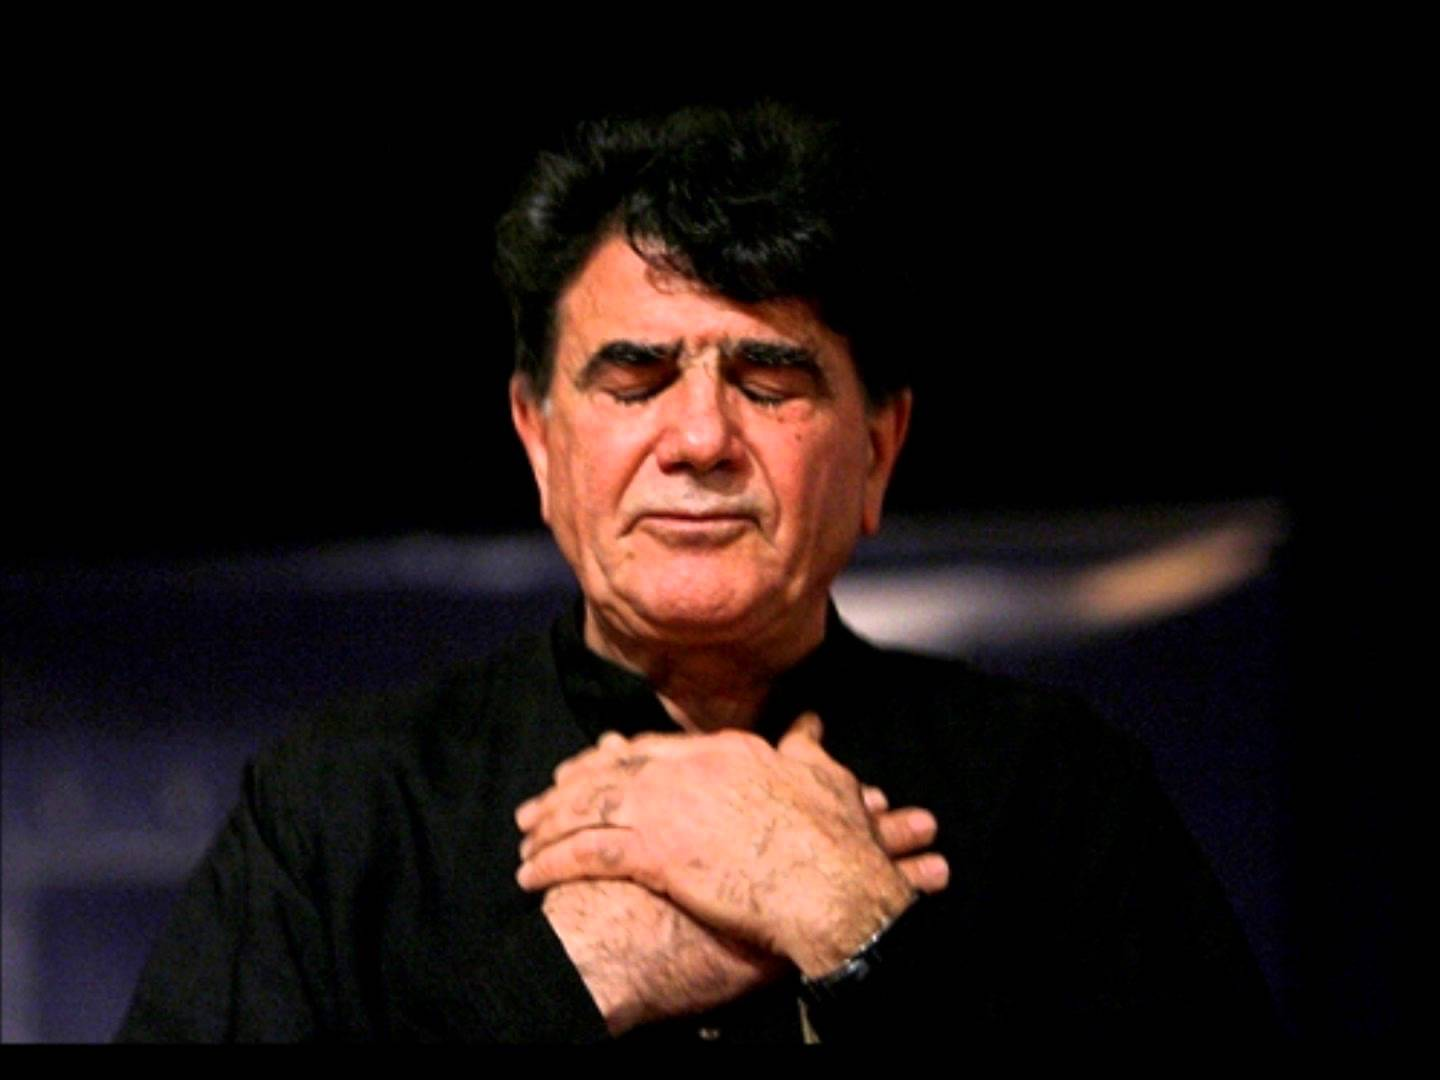 Master Mohammad Reza Shajarian, the Famous Iranian Traditional Singer, Dies at 81